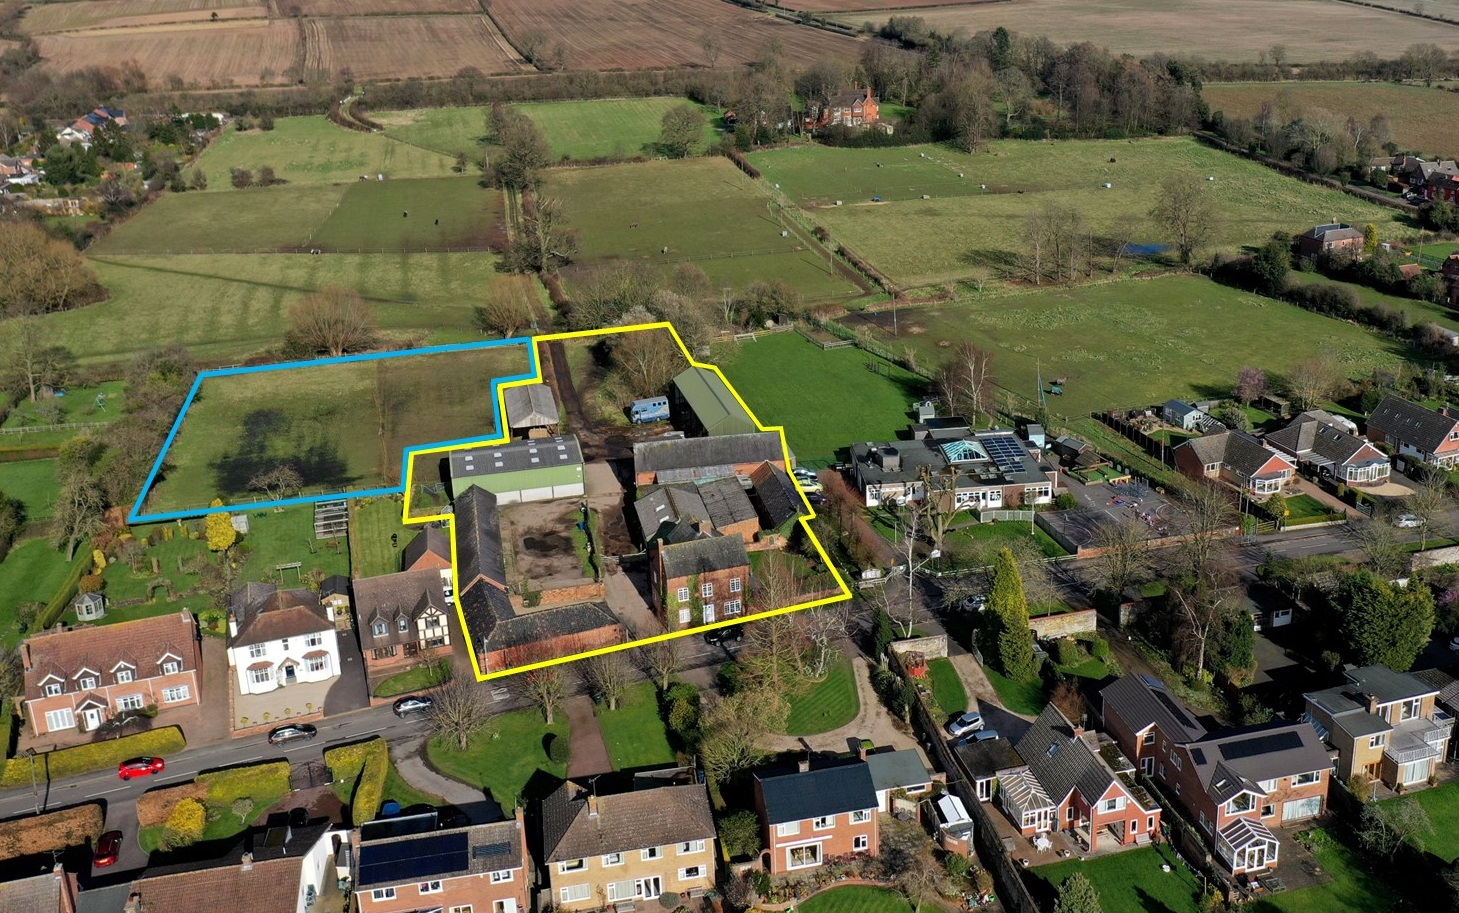 FARM & LAND DEAL COMPLETES FOR HOUSING DEVELOPMENT IN NORMANTON ON SOAR